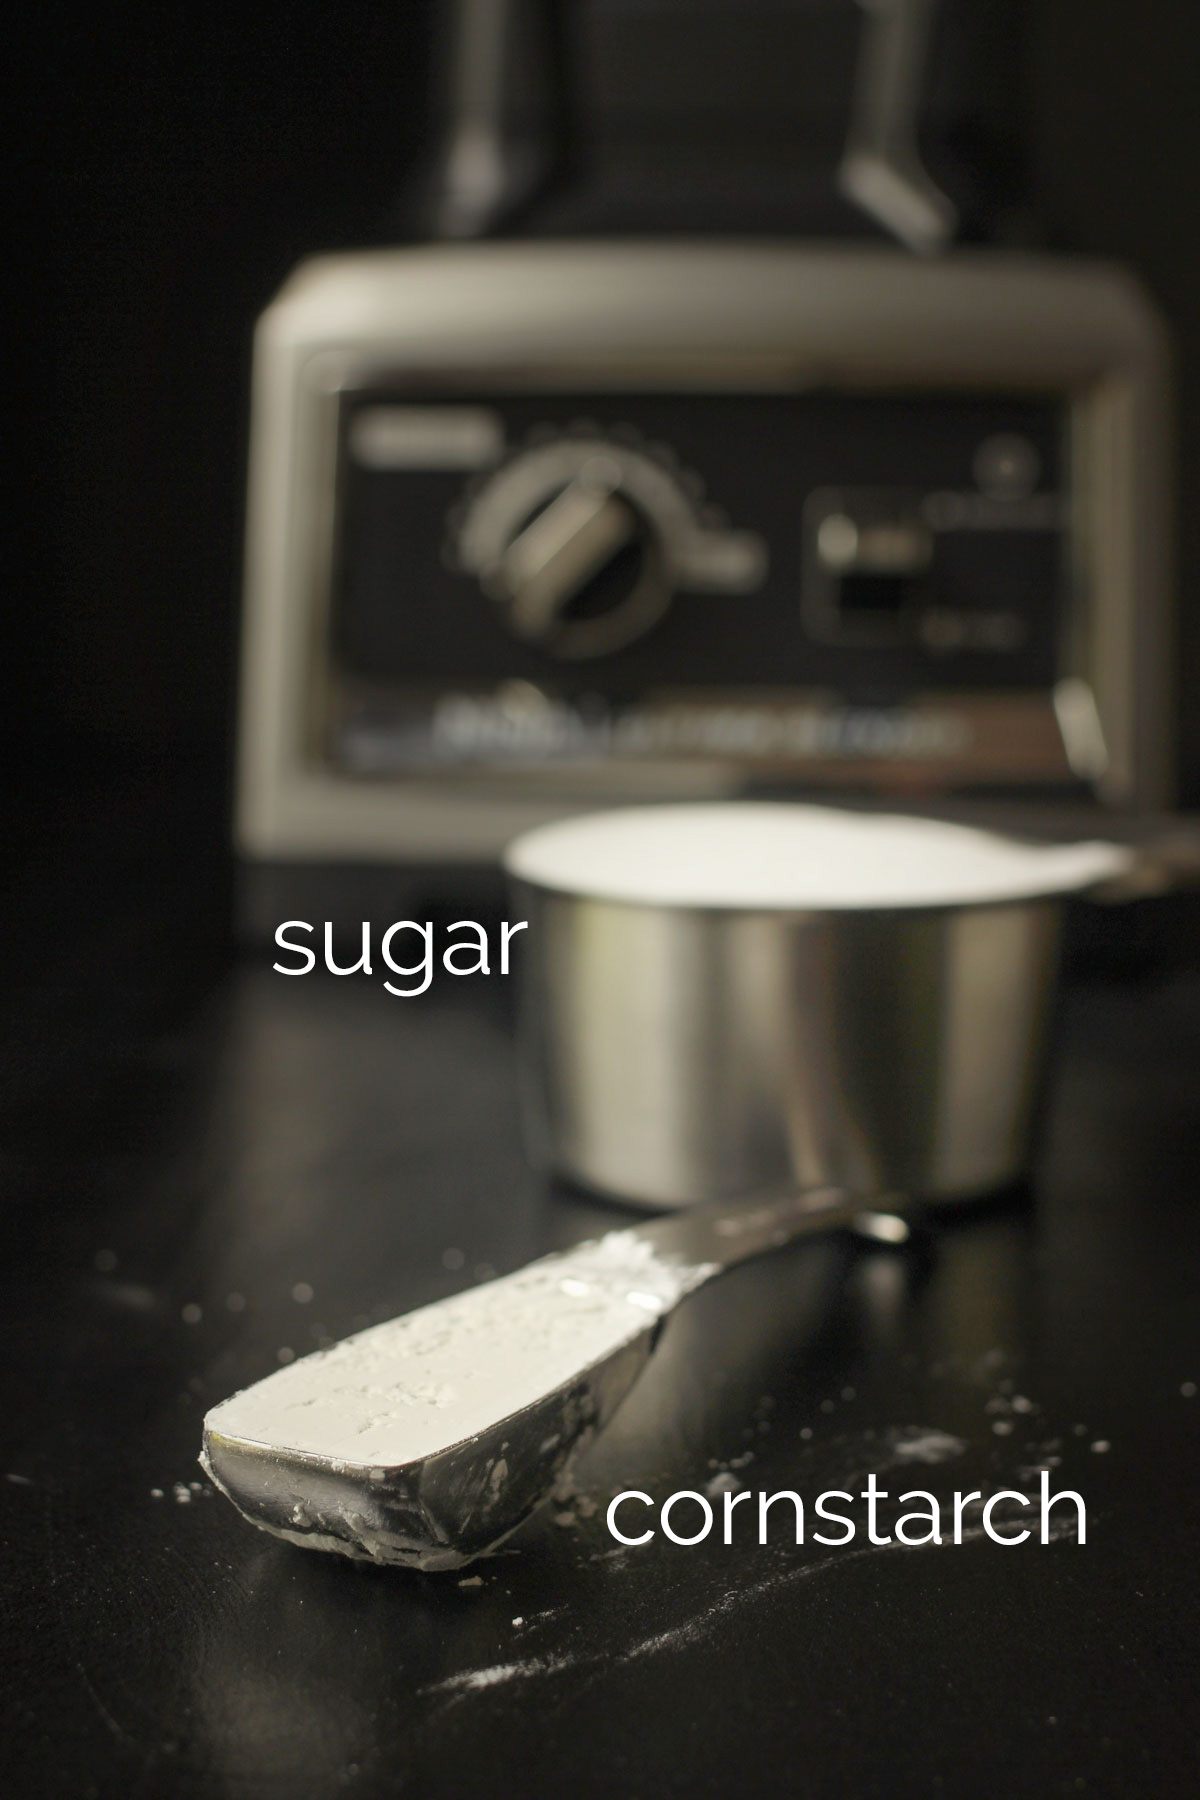 sugar and cornstarch measured out near blender.